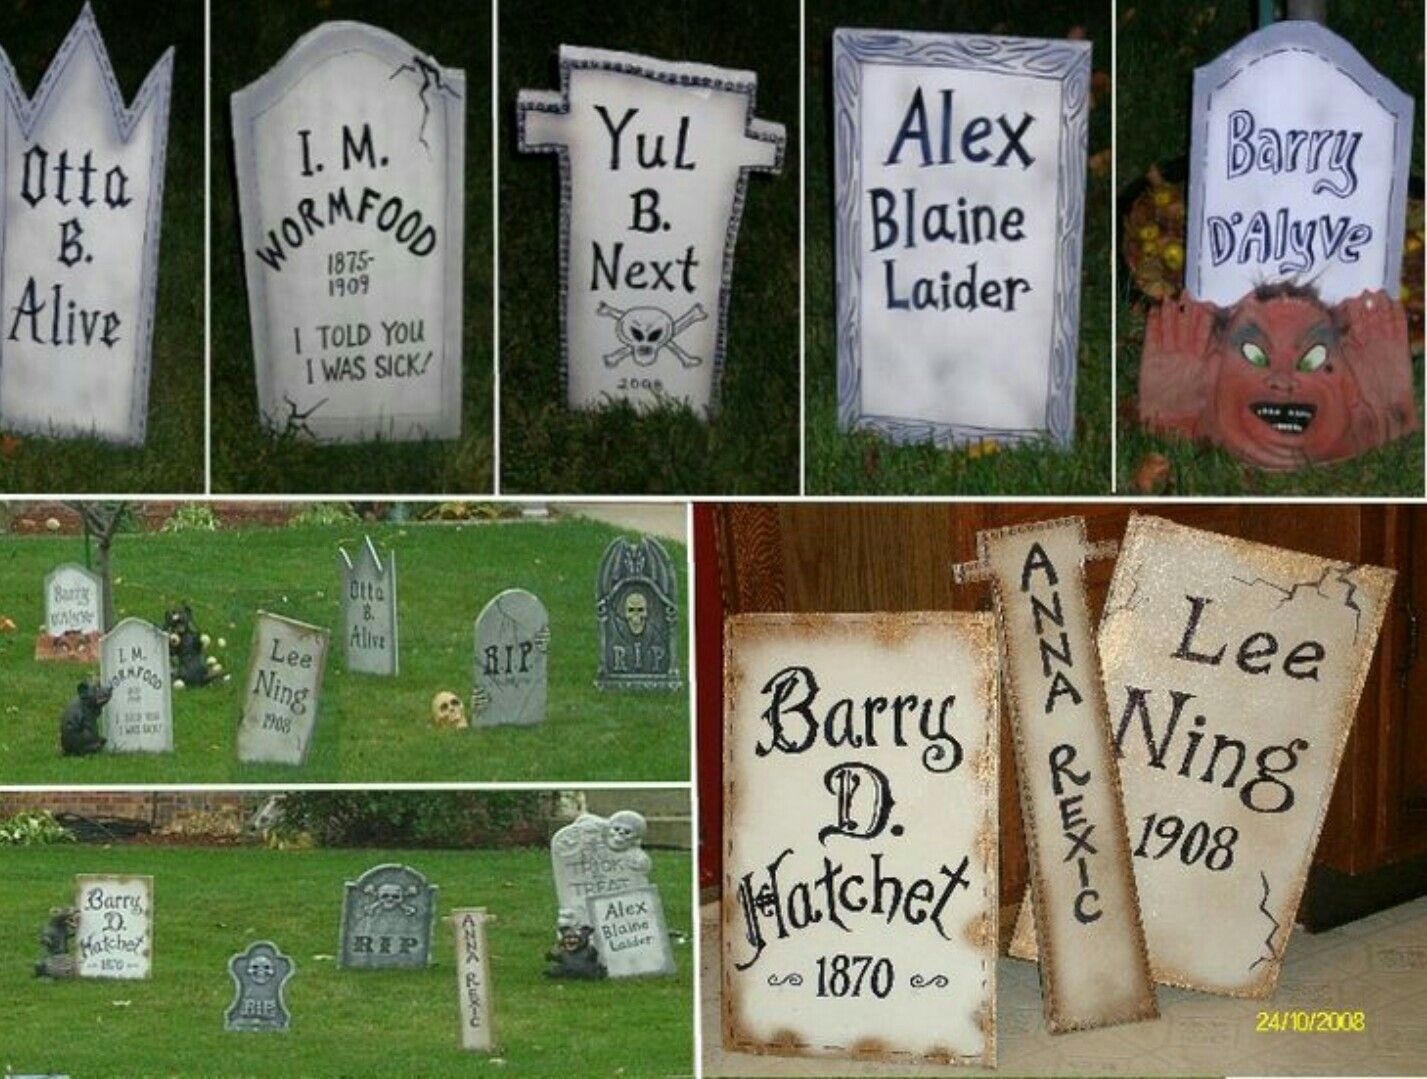 Pin by Deborah Bedard on Halloween yard Pinterest Halloween - Homemade Halloween Decorations